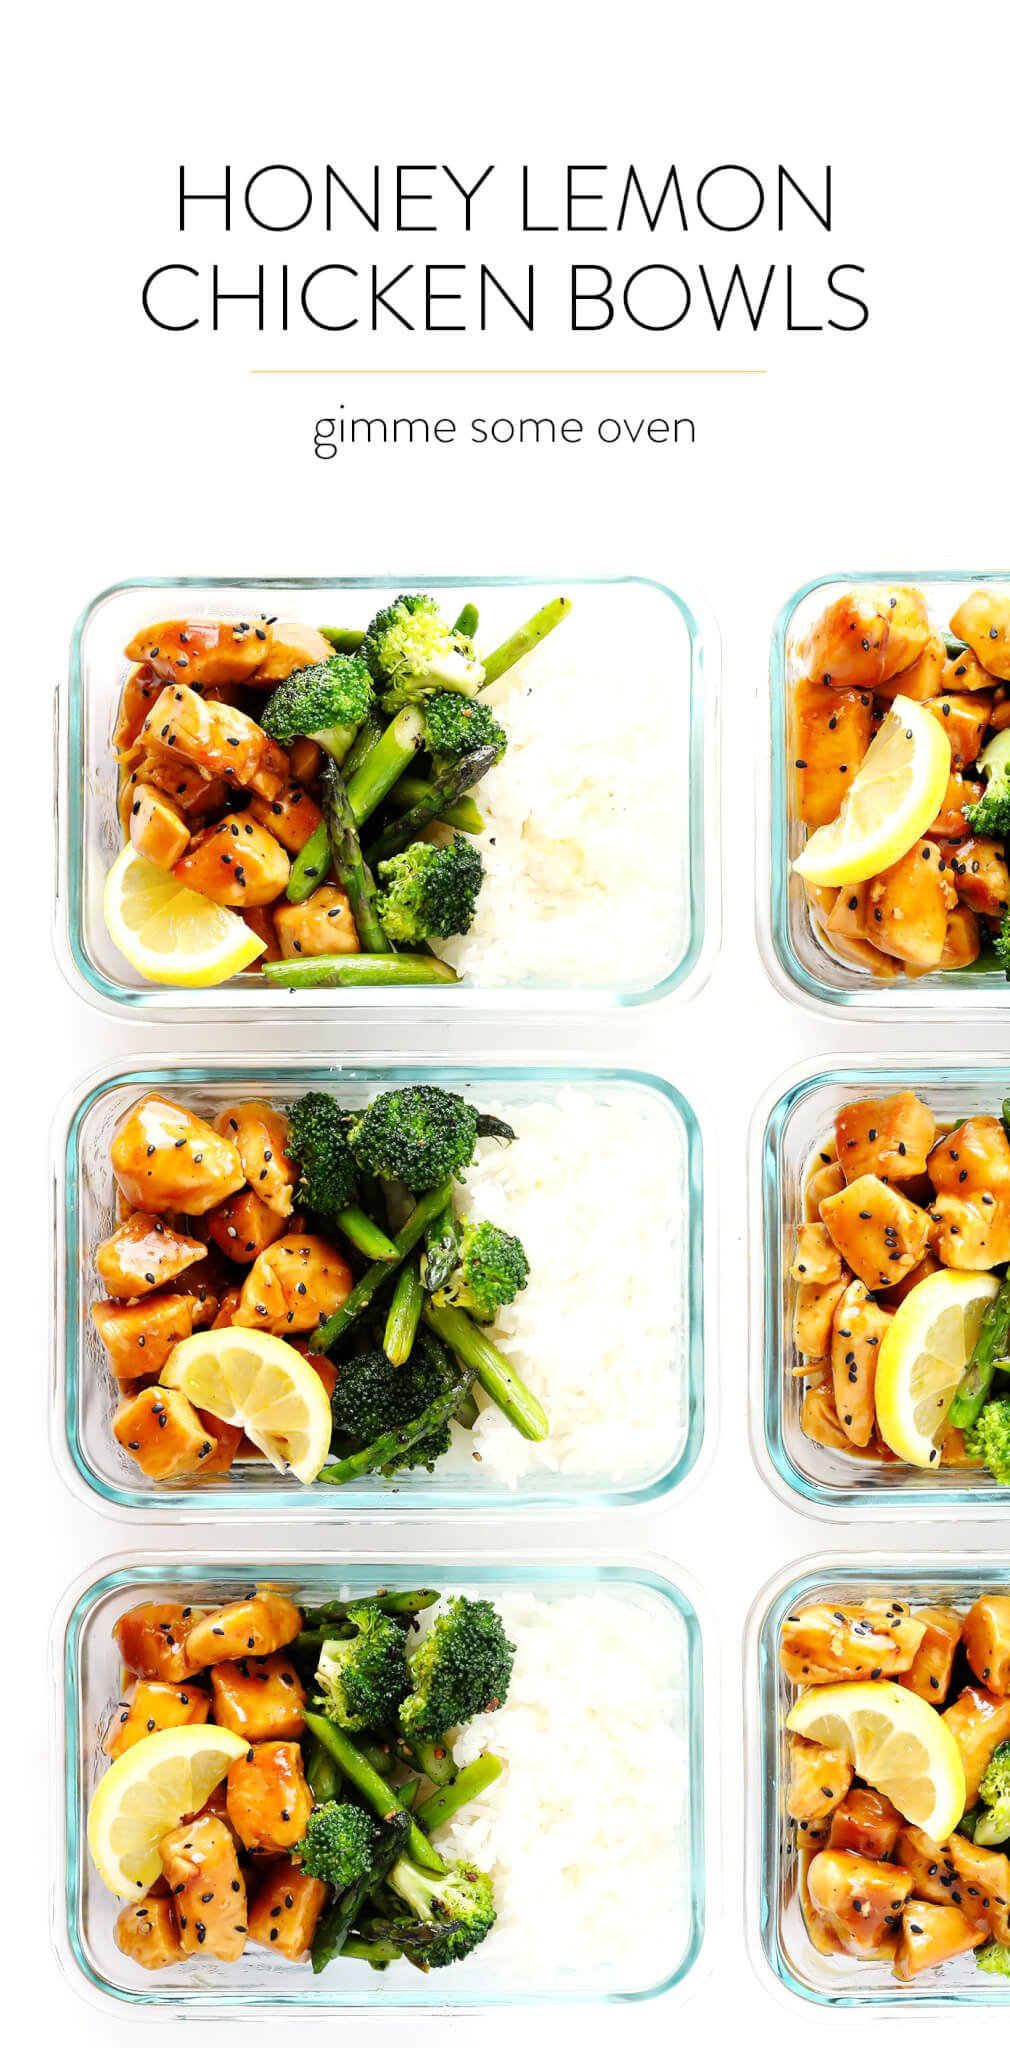 These Honey Lemon Chicken Bowls are one of my favorite healthy lunch or dinner meal prep ideas. They're quick and easy to prepare, made with an Asian honey lemon garlic sesame sauce, fresh asparagus and broccoli (or any vegetables), rice or quinoa. And they are delicious and naturally gluten-free! | gimmesomeoven.com